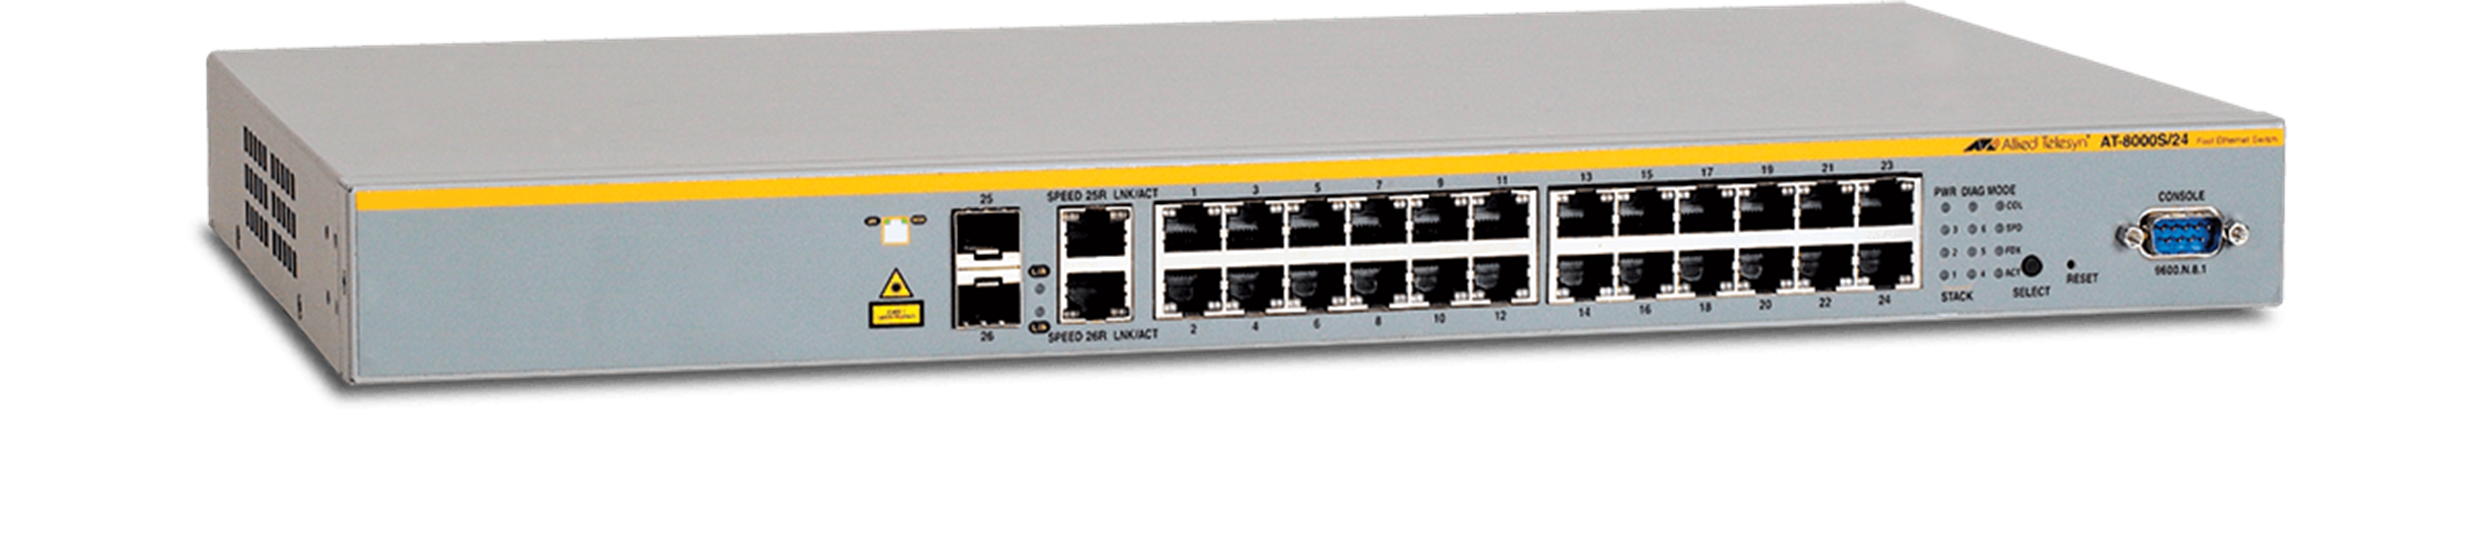 AT-8000S Series - Layer 2 Fast Ethernet Switch